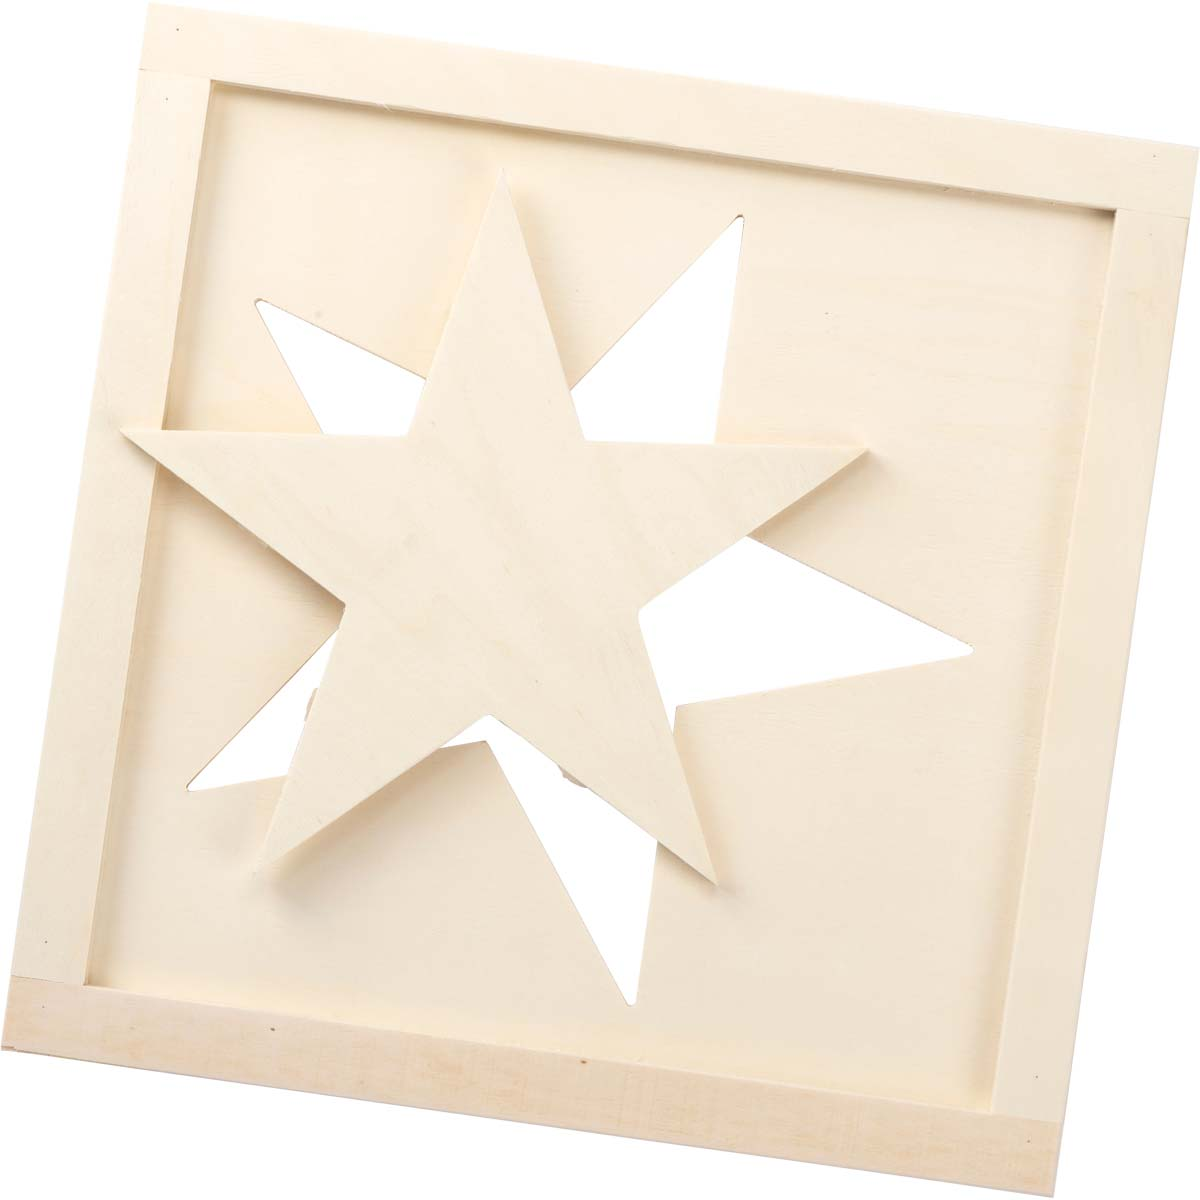 Plaid ® Wood Surfaces - 2-in-1 Star Wall Hanging - 56708